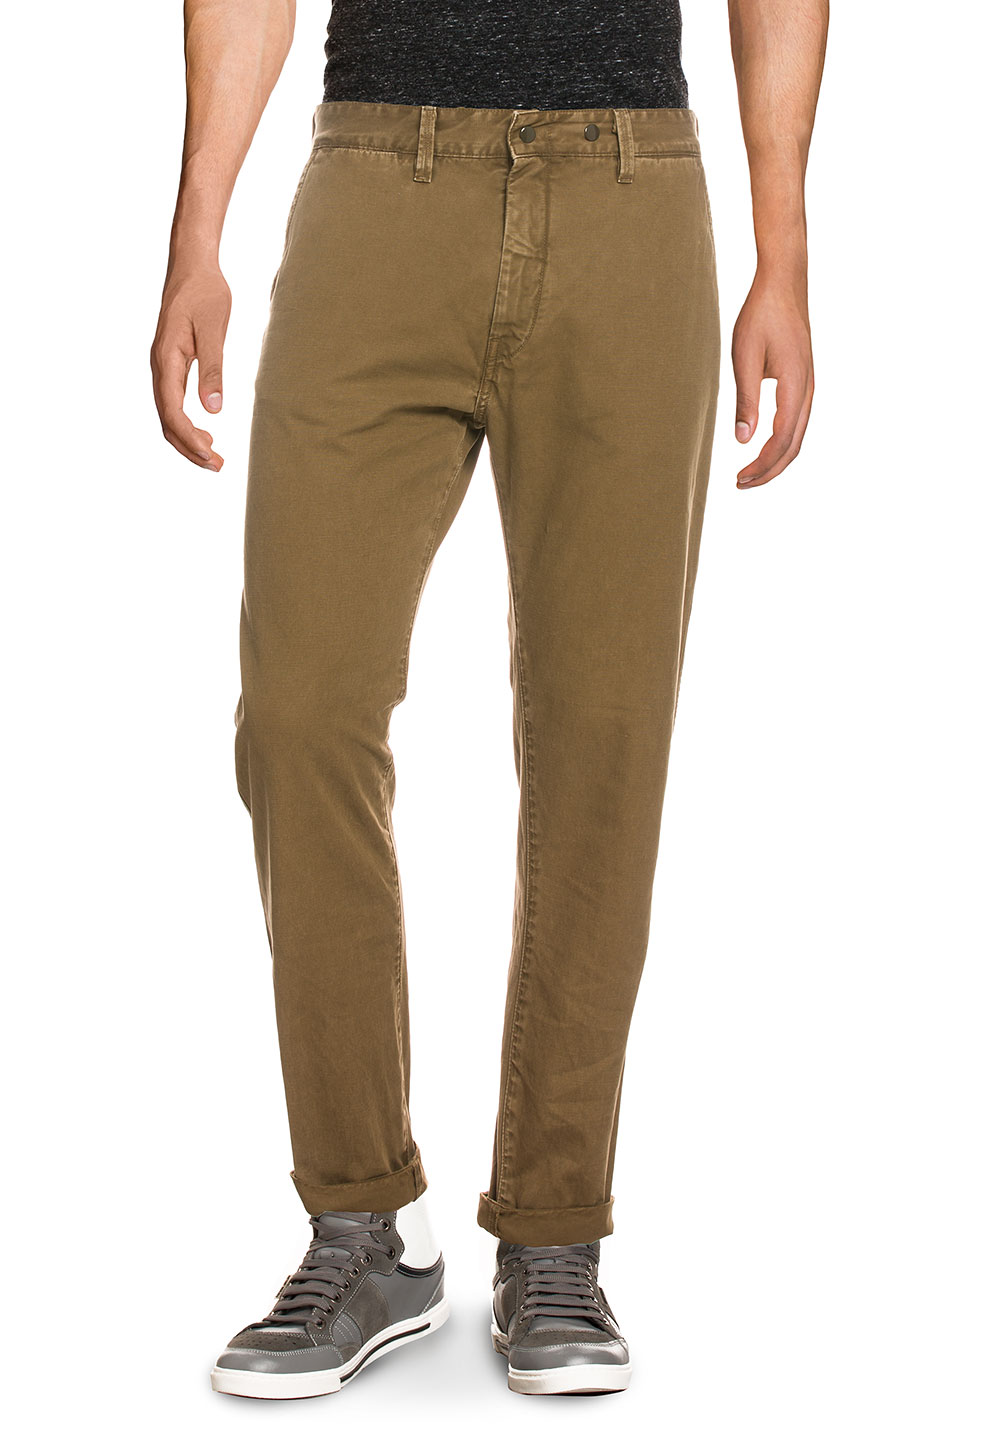 Replay Chino Nickave, Slim Fit braun | Bekleidung > Hosen > Chinohosen | Braun | Replay